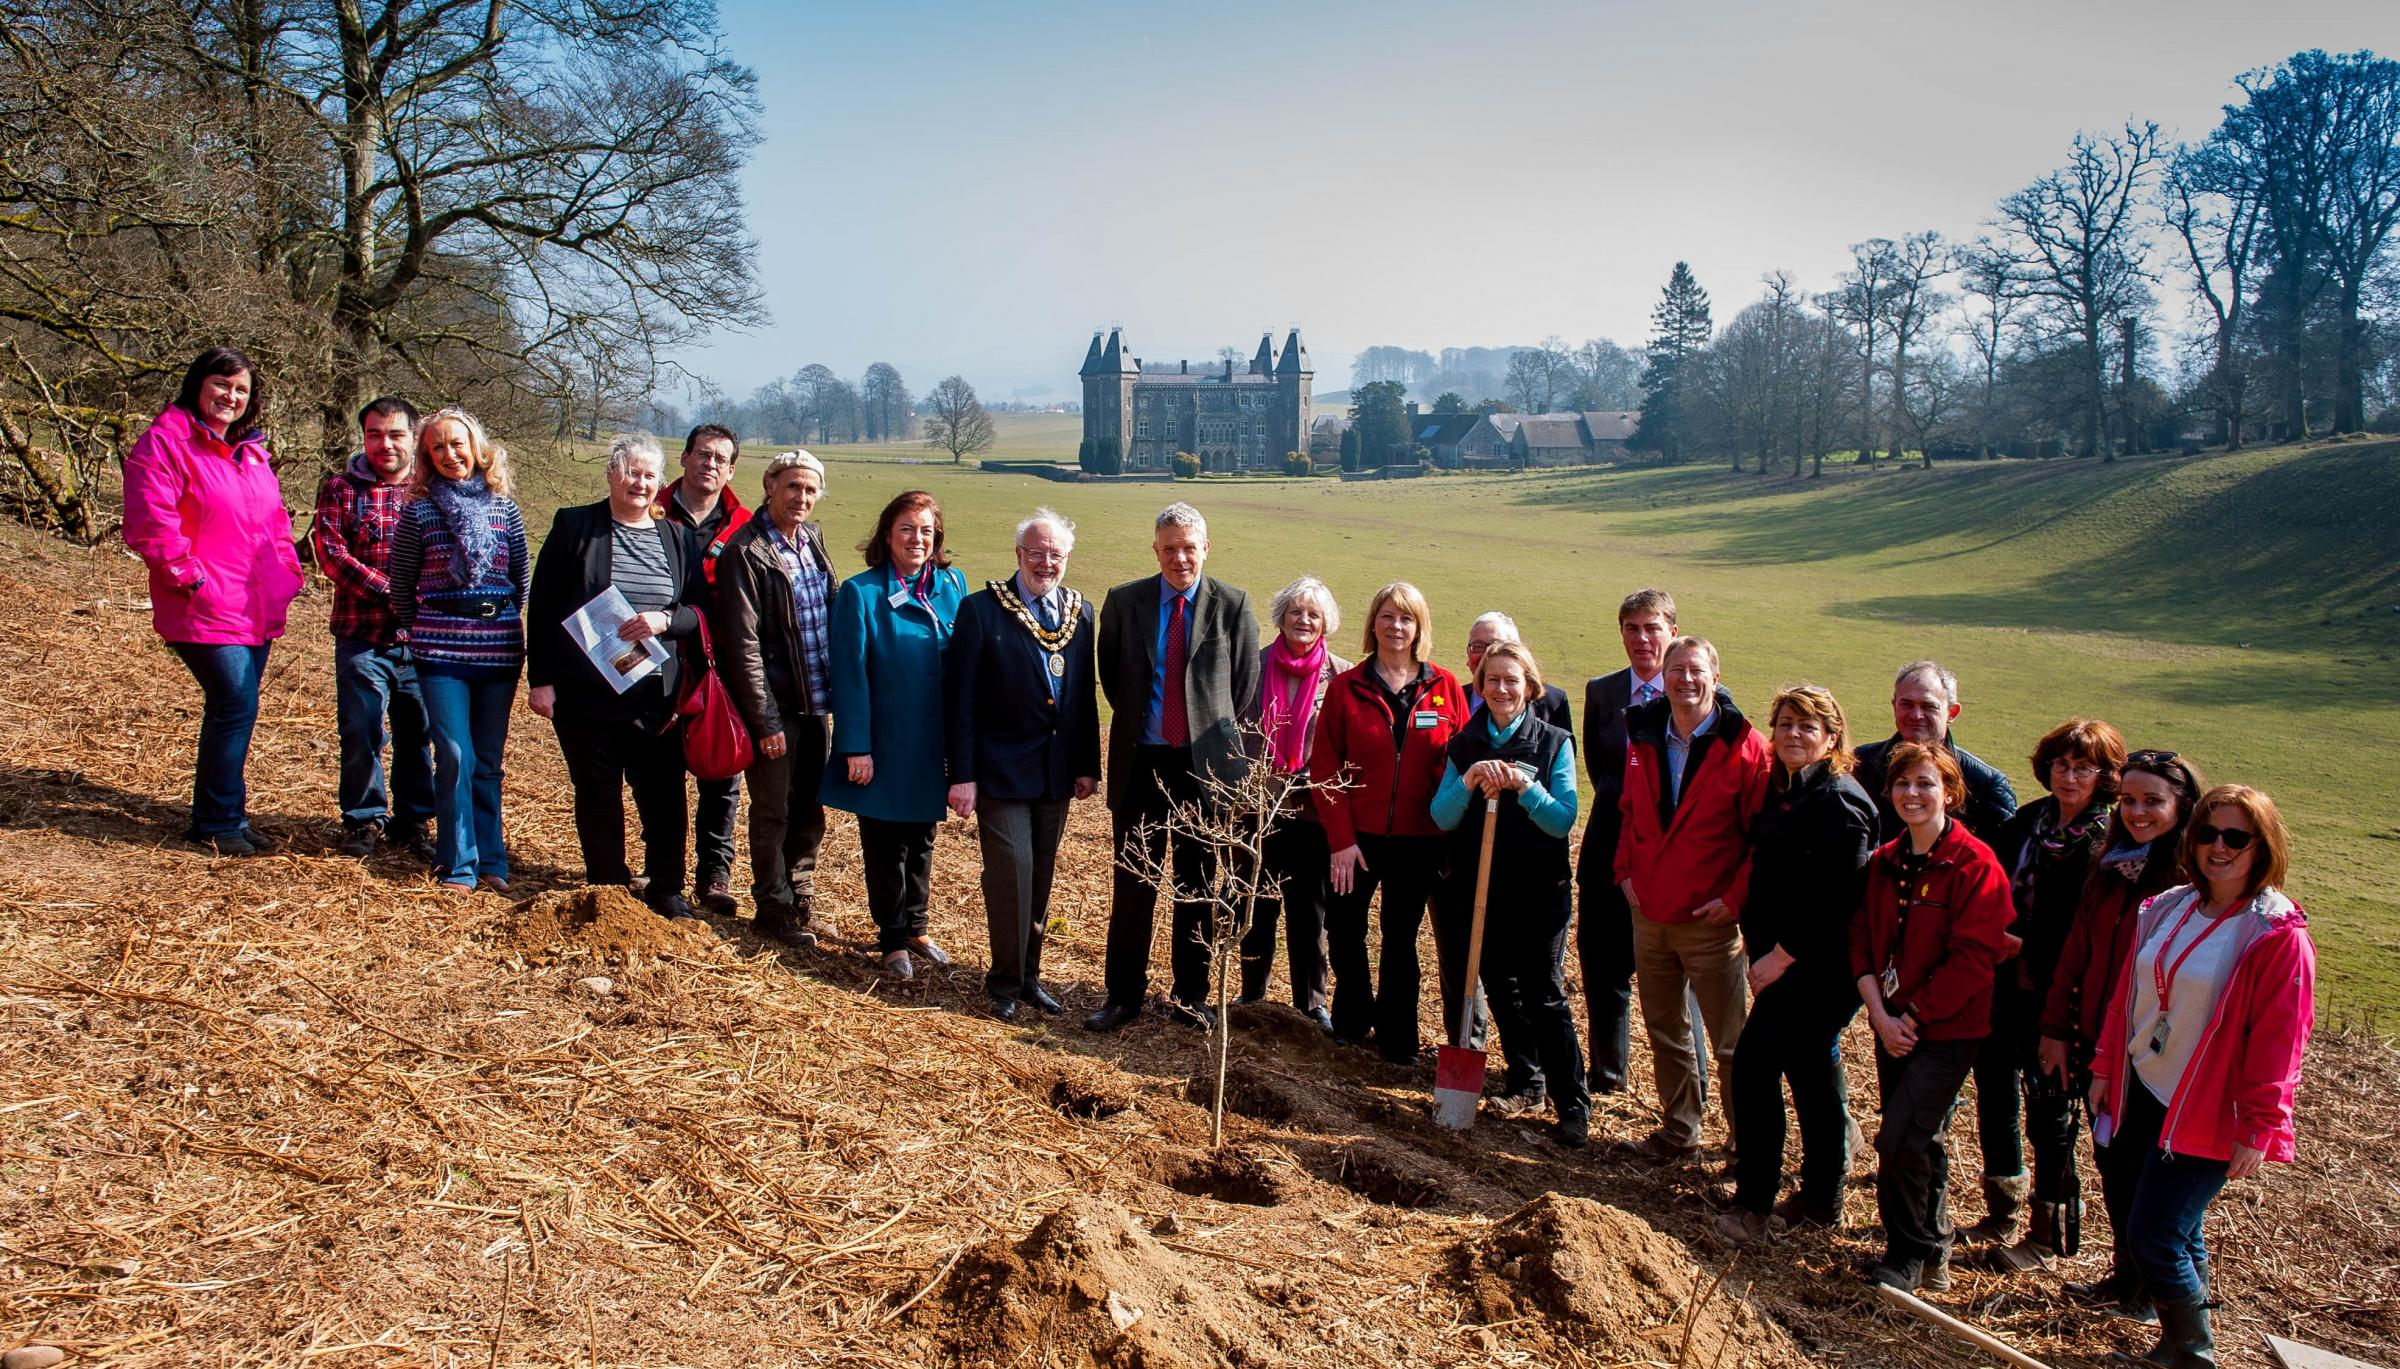 Dame Helen Ghosh plants the tree at Dinefwr Park, Llandeilo looked on by local dignitaries and invited guests. Photo: National Trust/Aled Llewellyn, Athena Picture agency.